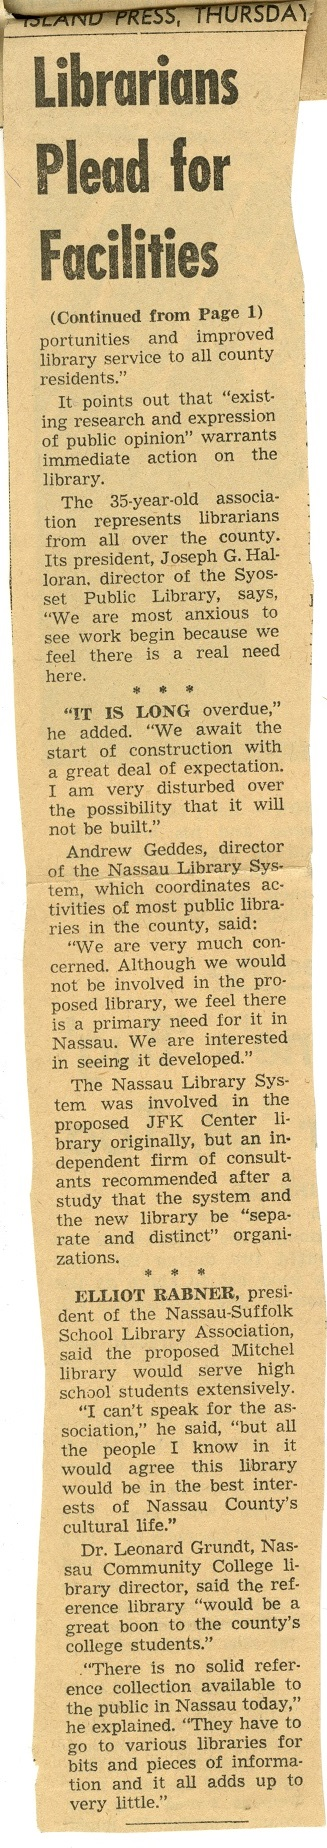 Librarians Plead for Facilities